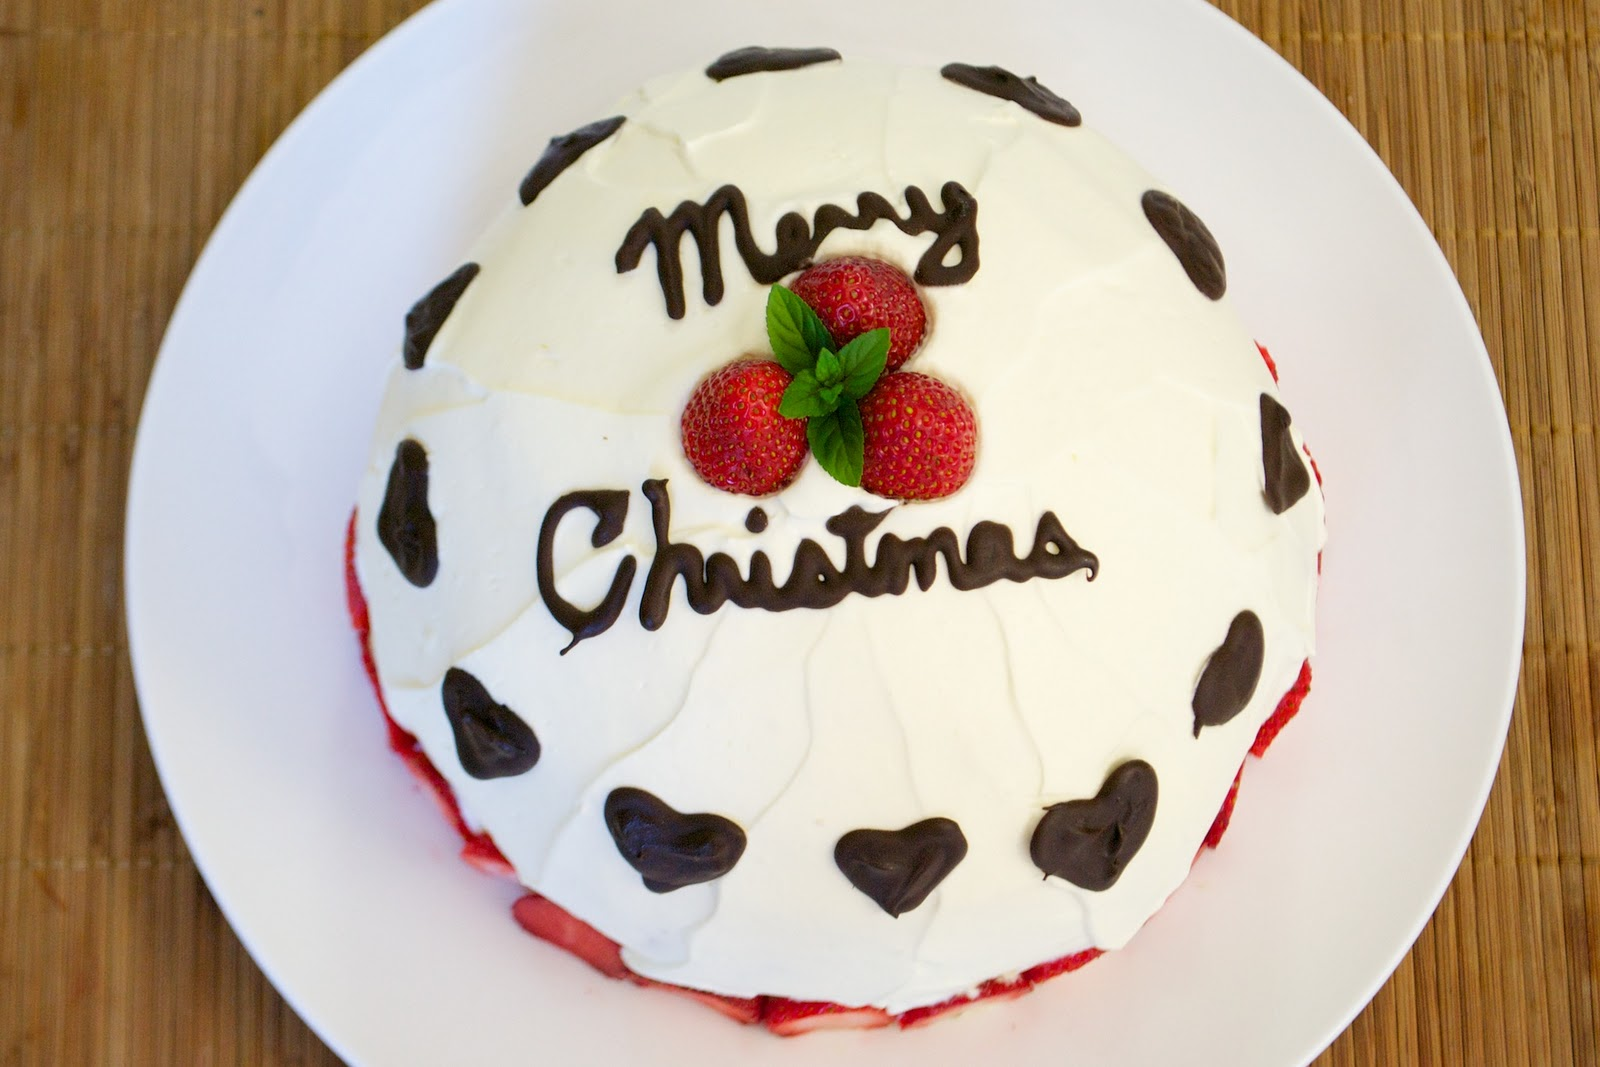 How to make christmas cake - How To Make A Dome Shaped Japanese Christmas Cake